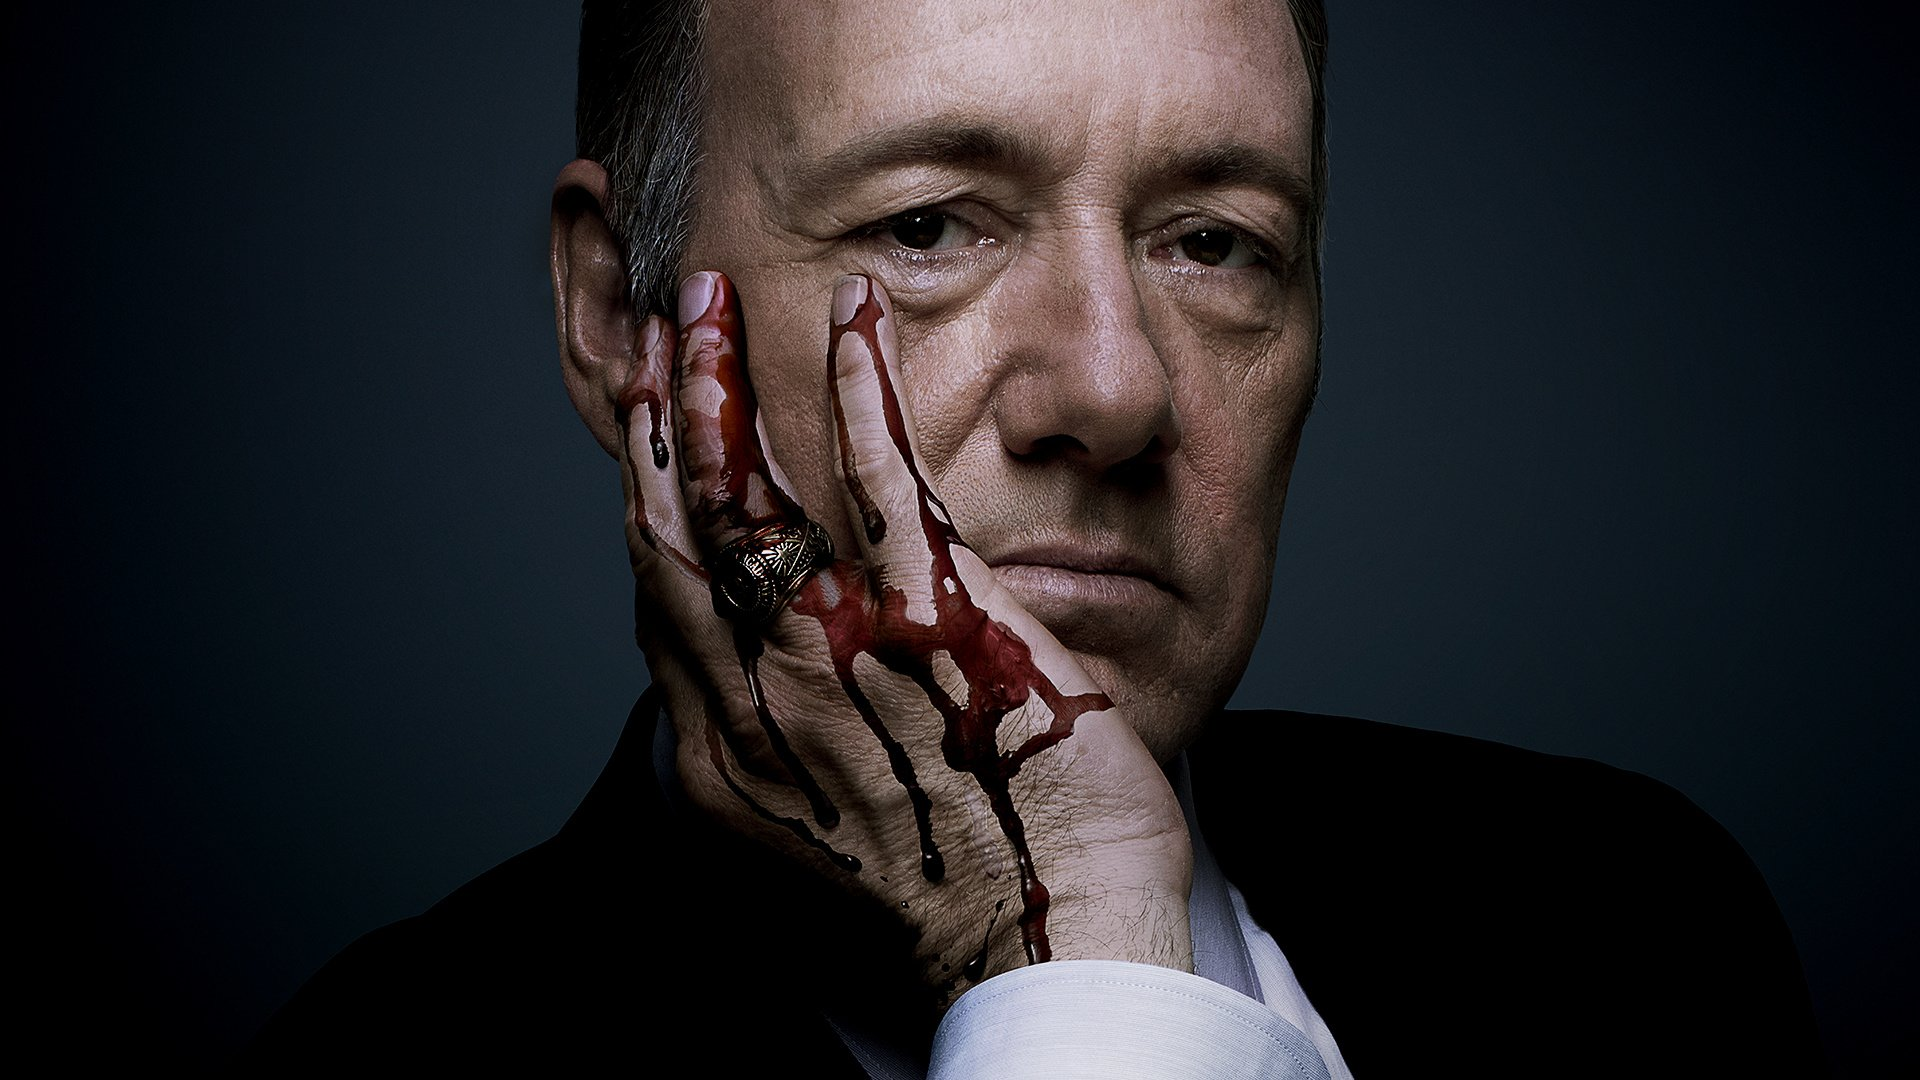 houseofcards1.jpg